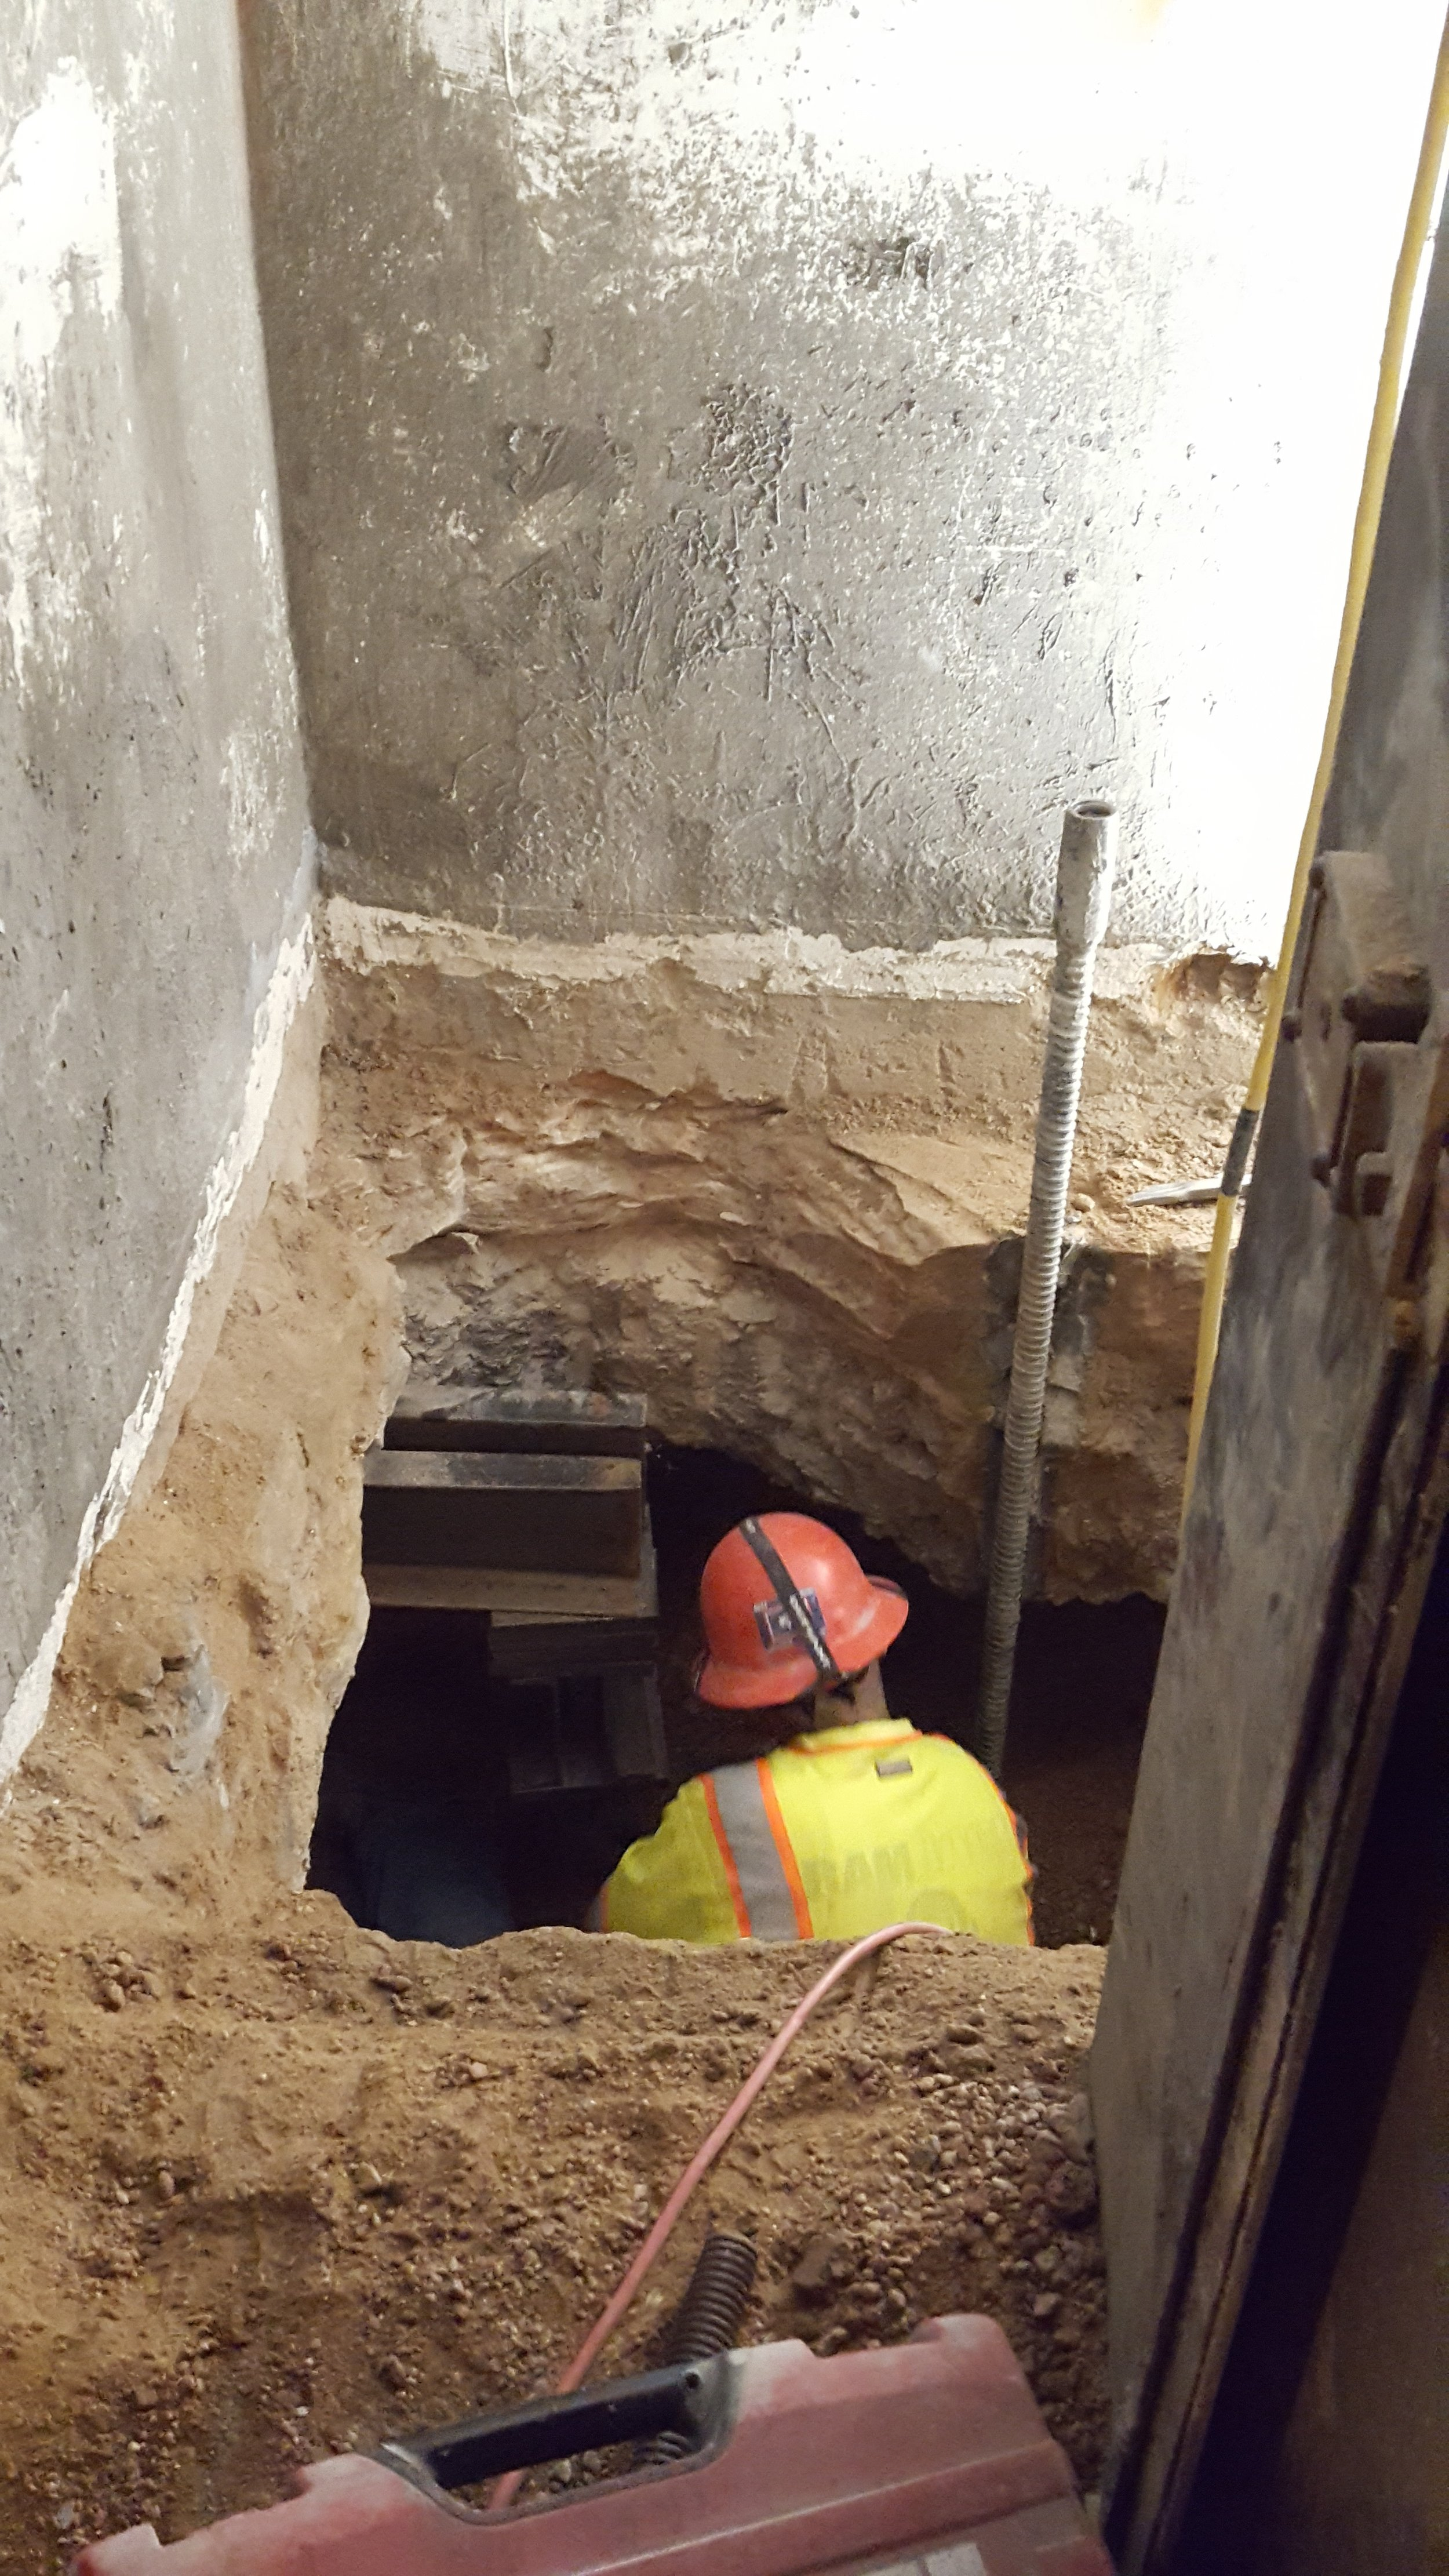 - A worker digs out the footing around an inserted needle beam.